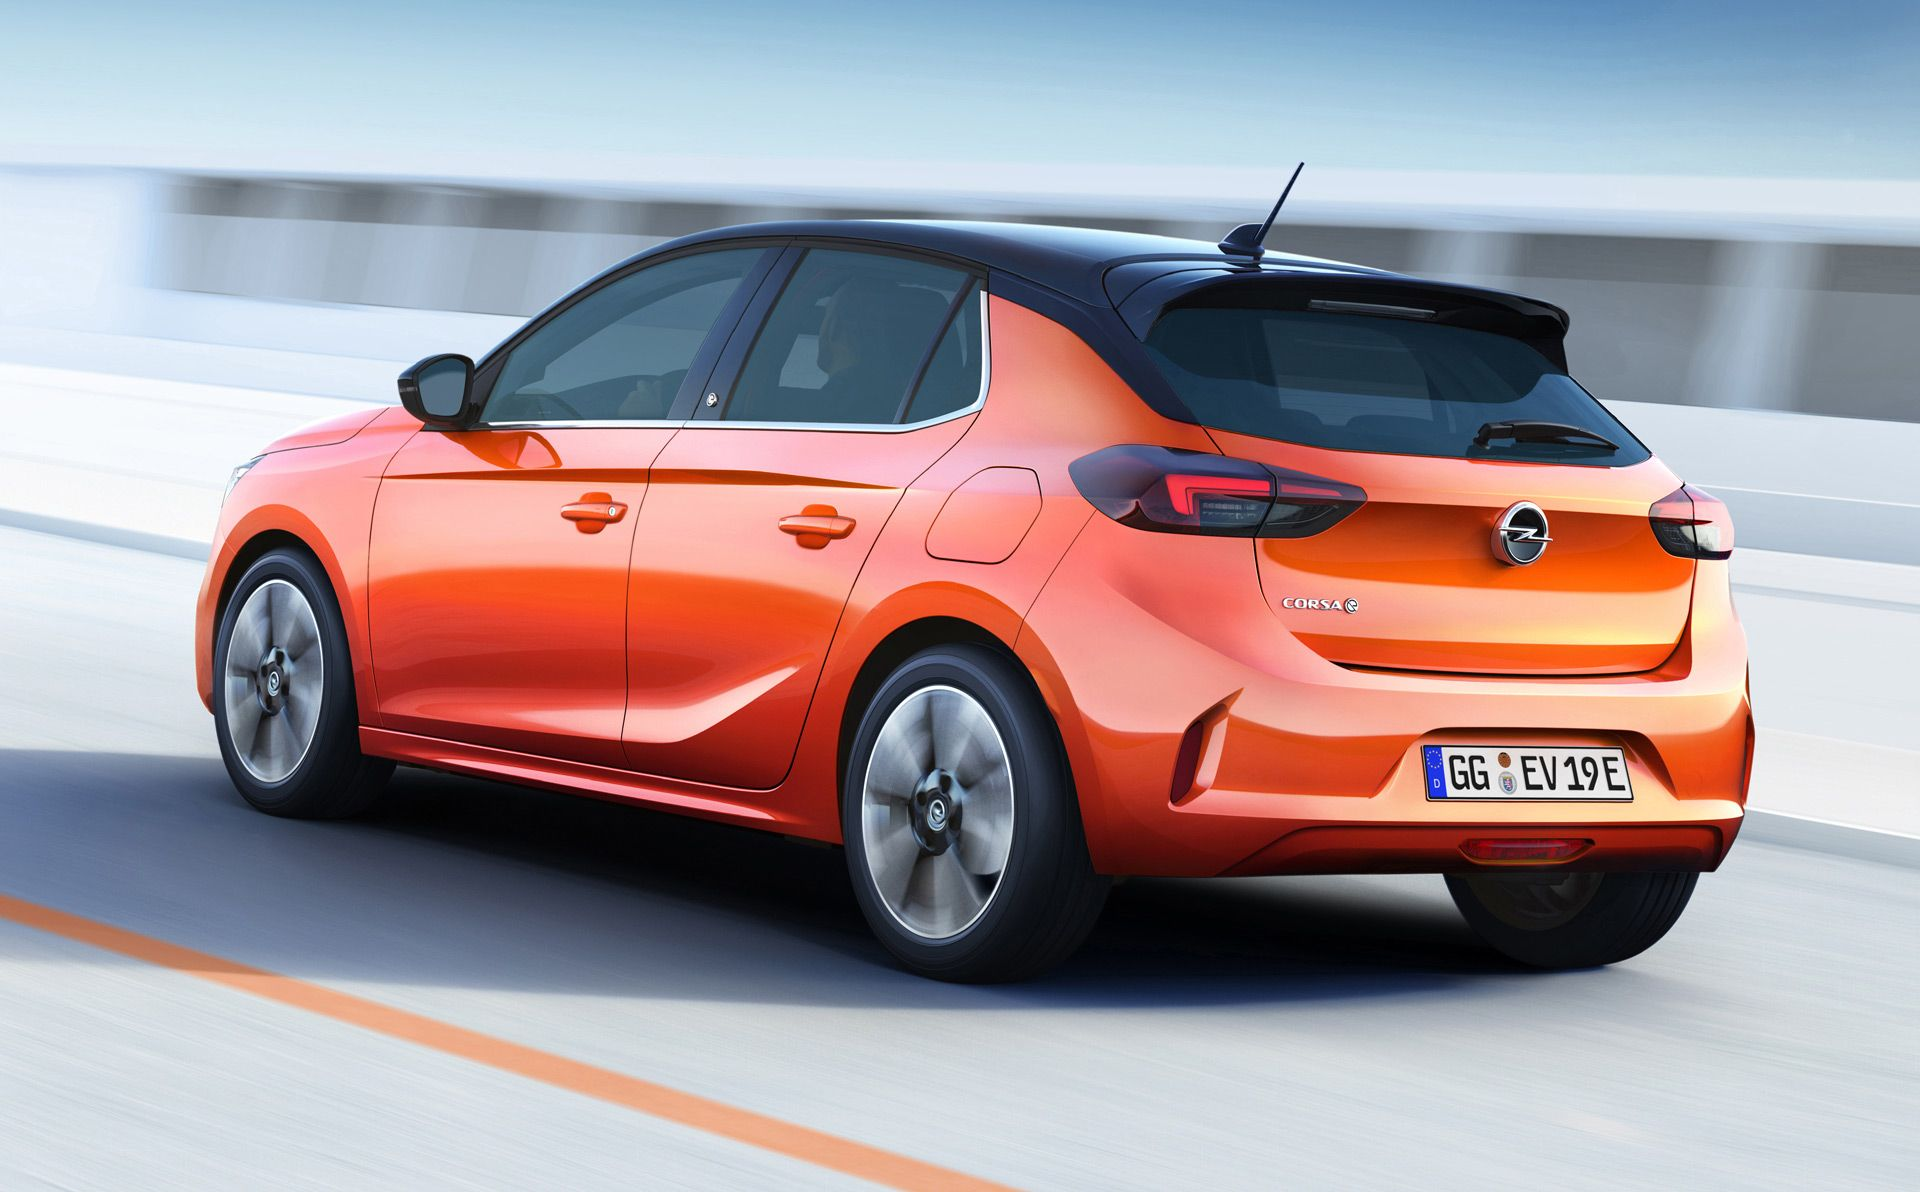 Opel S First Car Post Gm Is The 2020 Corsa E Electric Hatch Opel Corsa Autos Mexico Autos